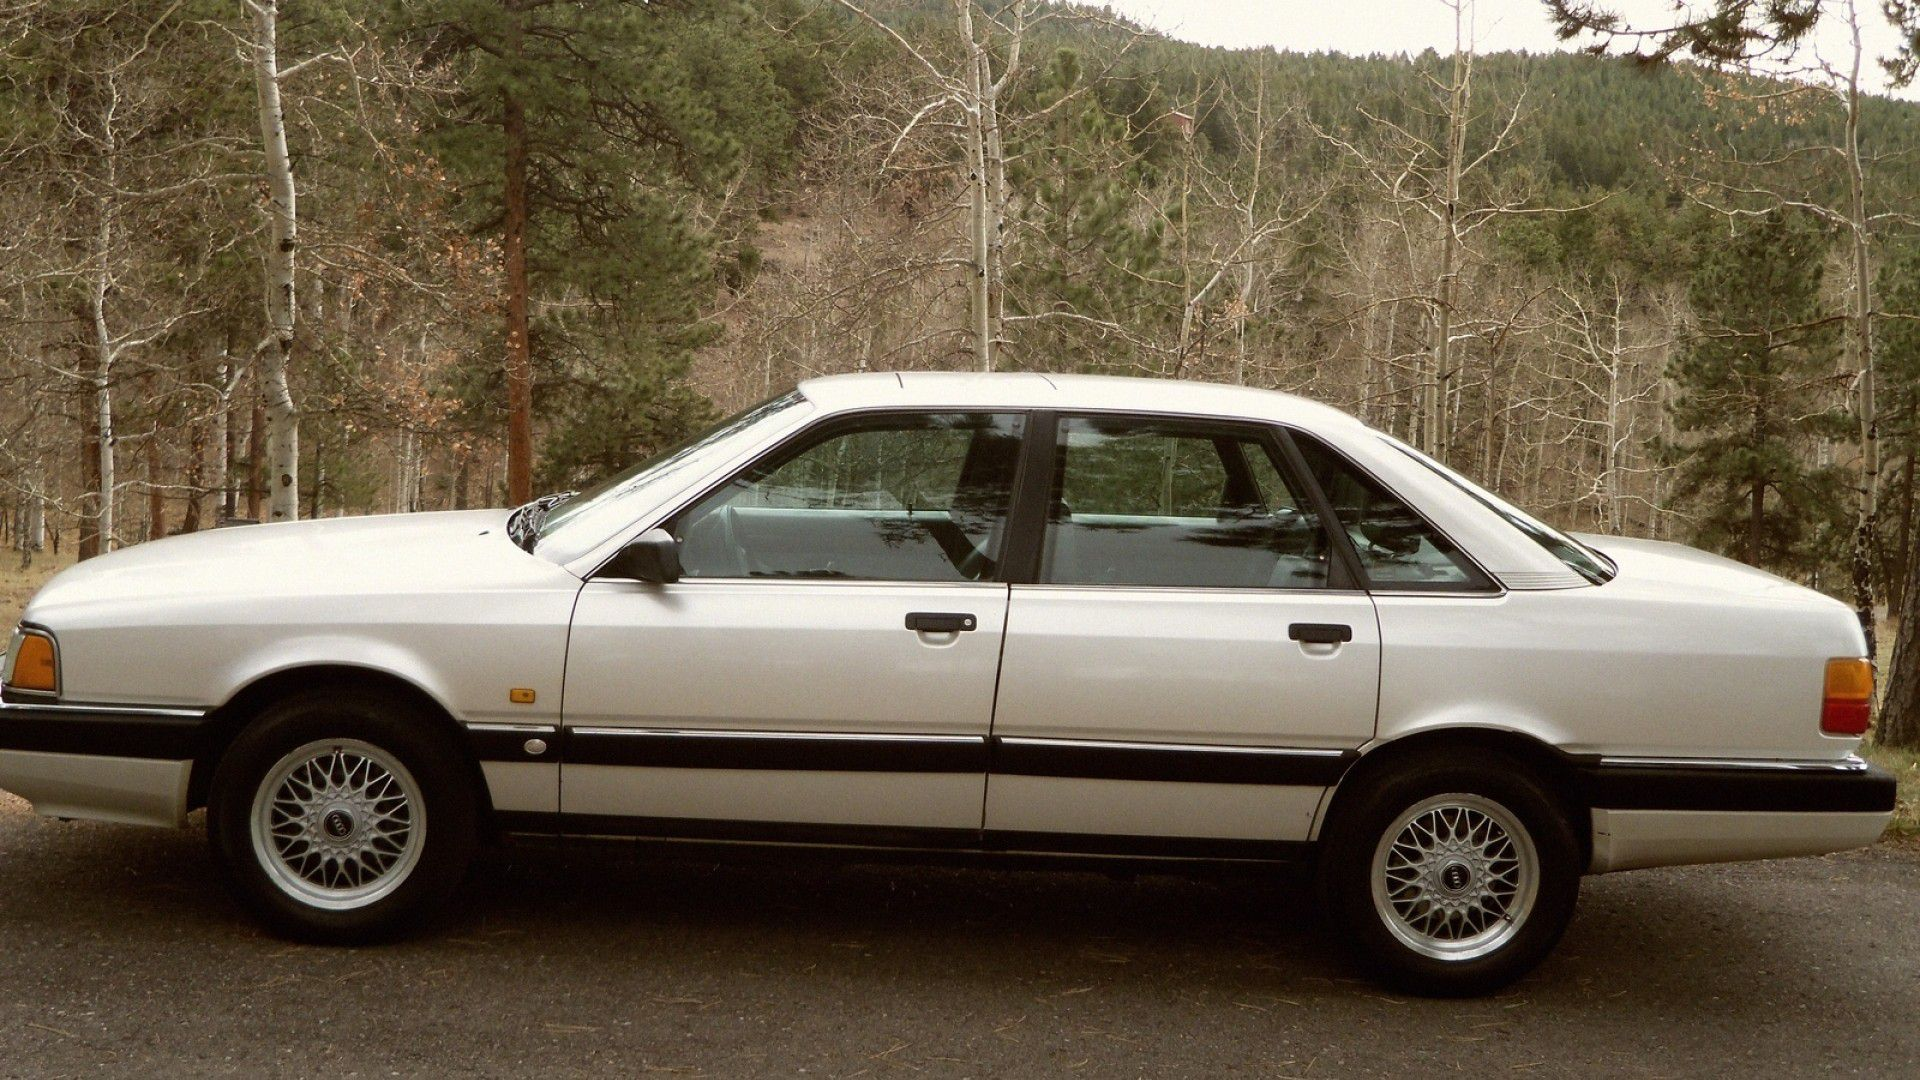 Audi S4 (1991 to 1994)